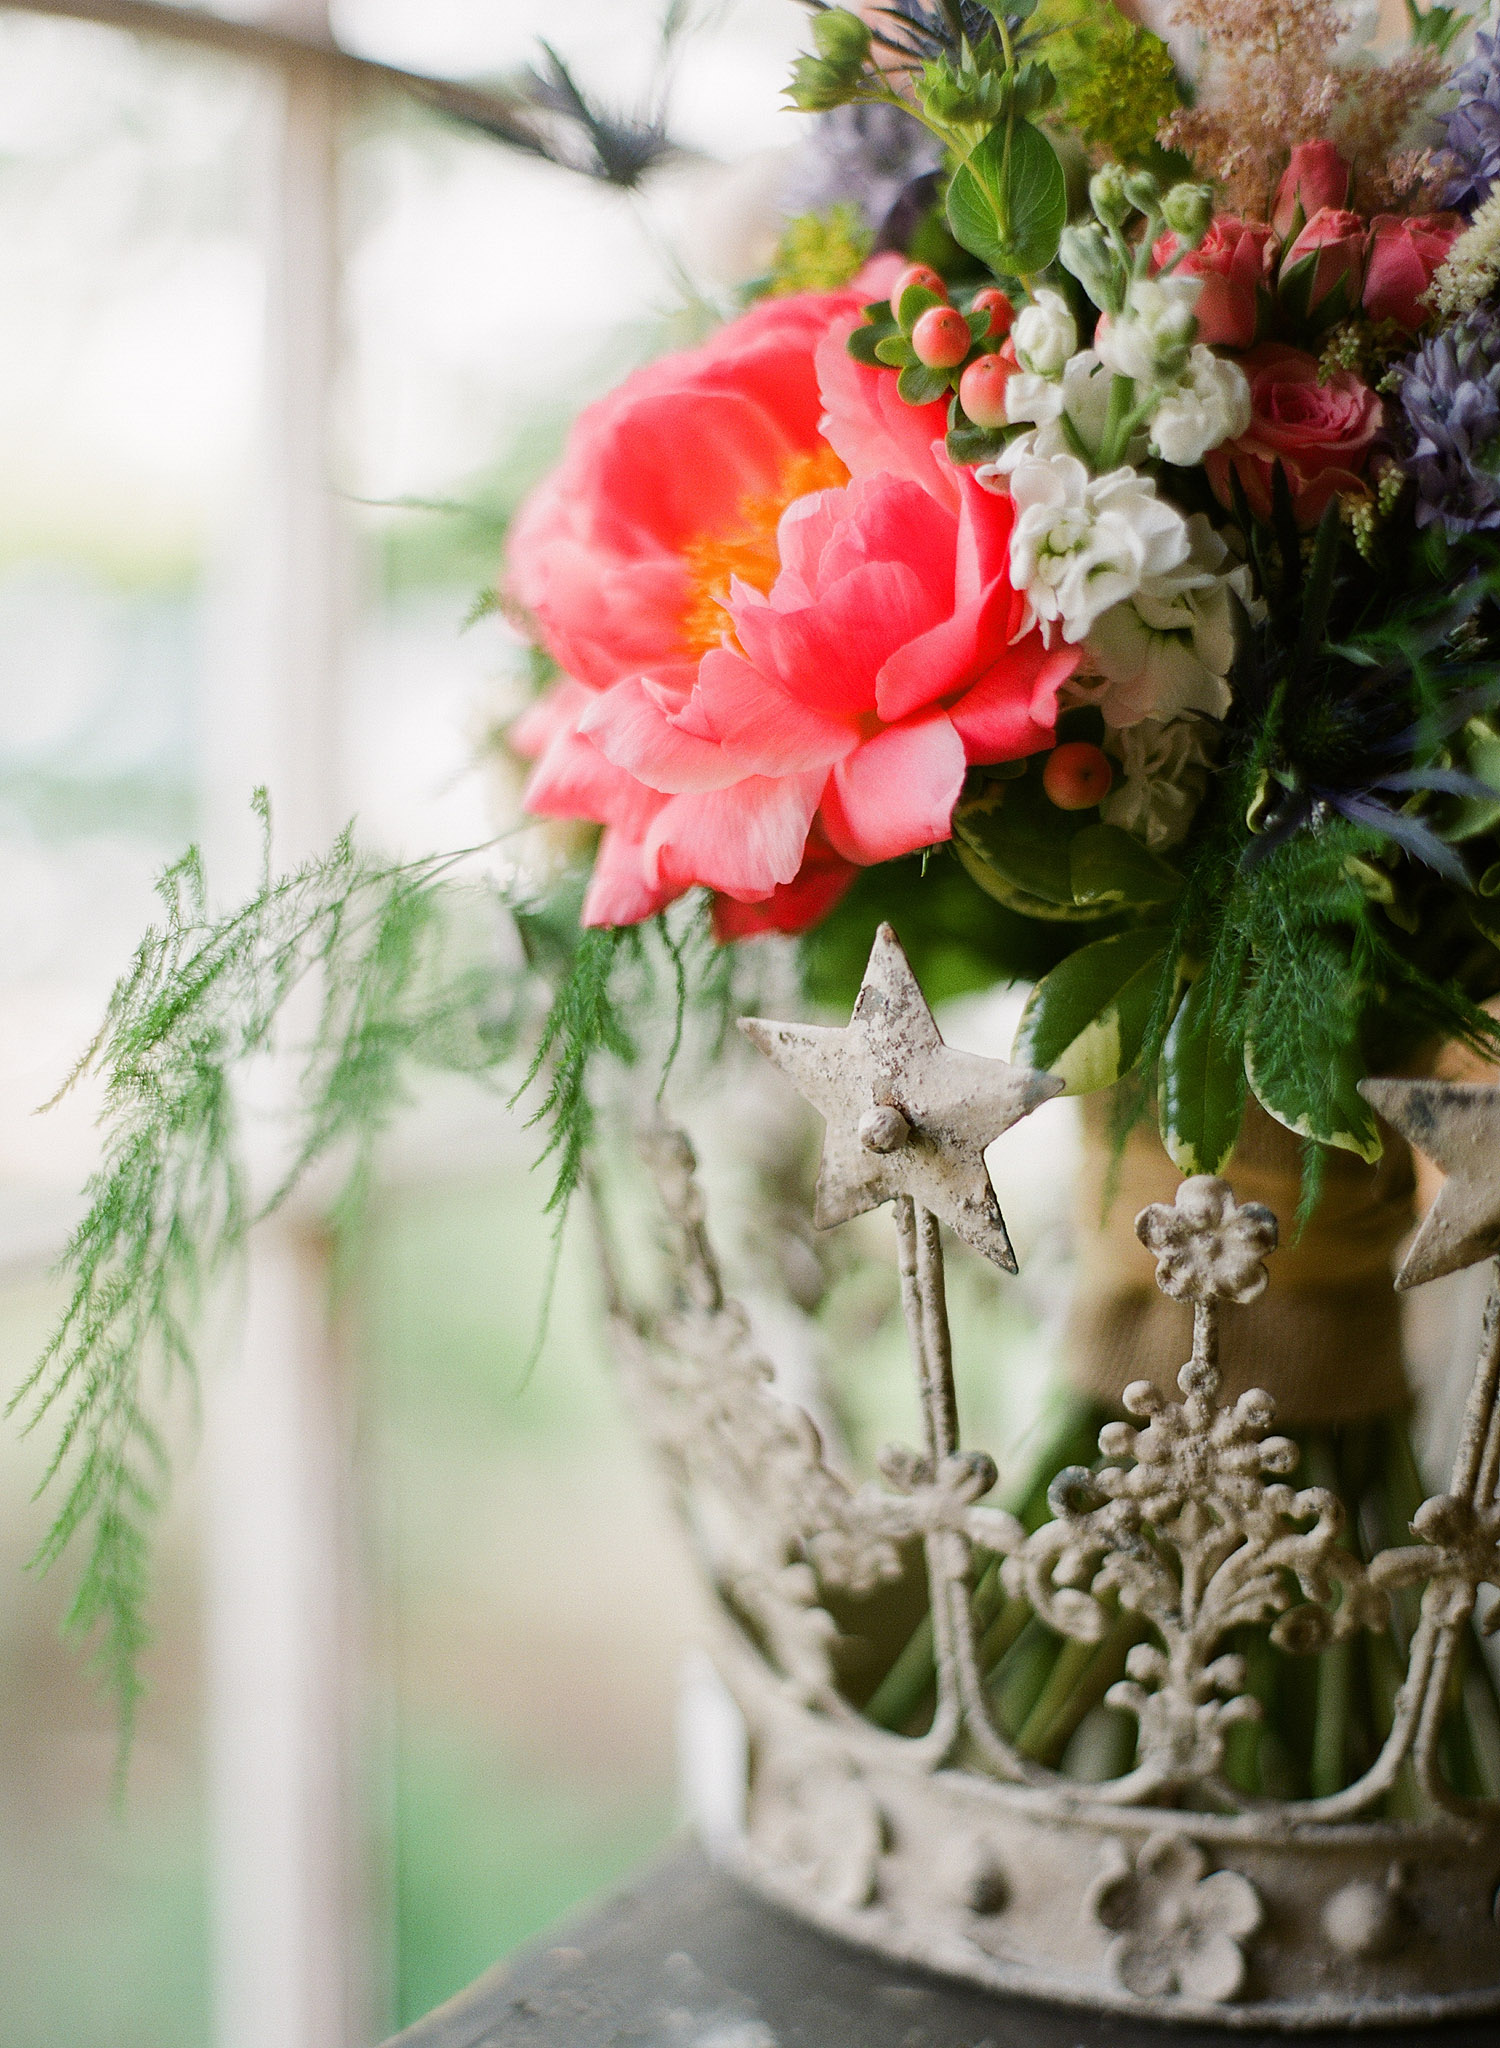 detail image of the peony and ferm asymmetrical bouquet at  this springtime wedding at Northwind Perennial gardens - a wisconsin wedding venue - as a film wedding photographer Lexia Frank photographs this destination wedding on film